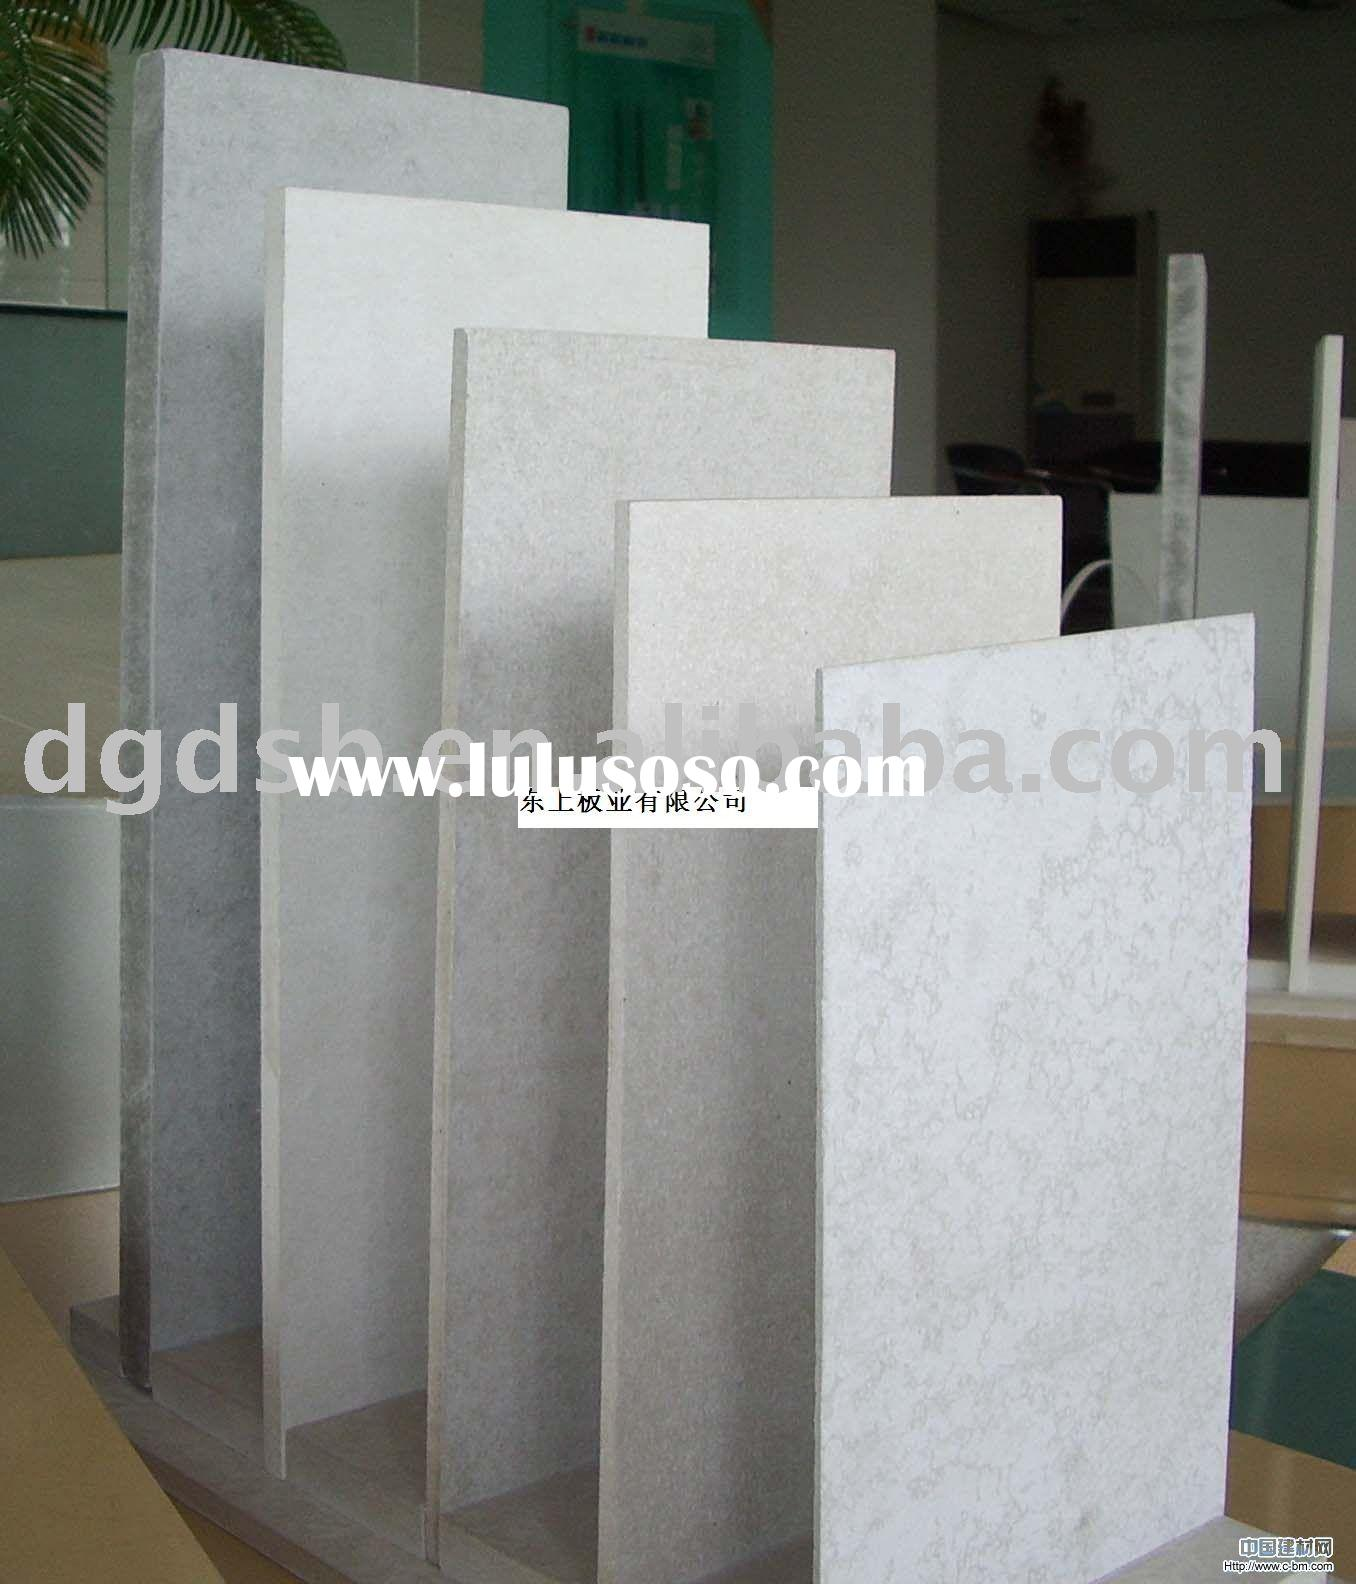 National Gypsum Permabase Cement Board National Gypsum